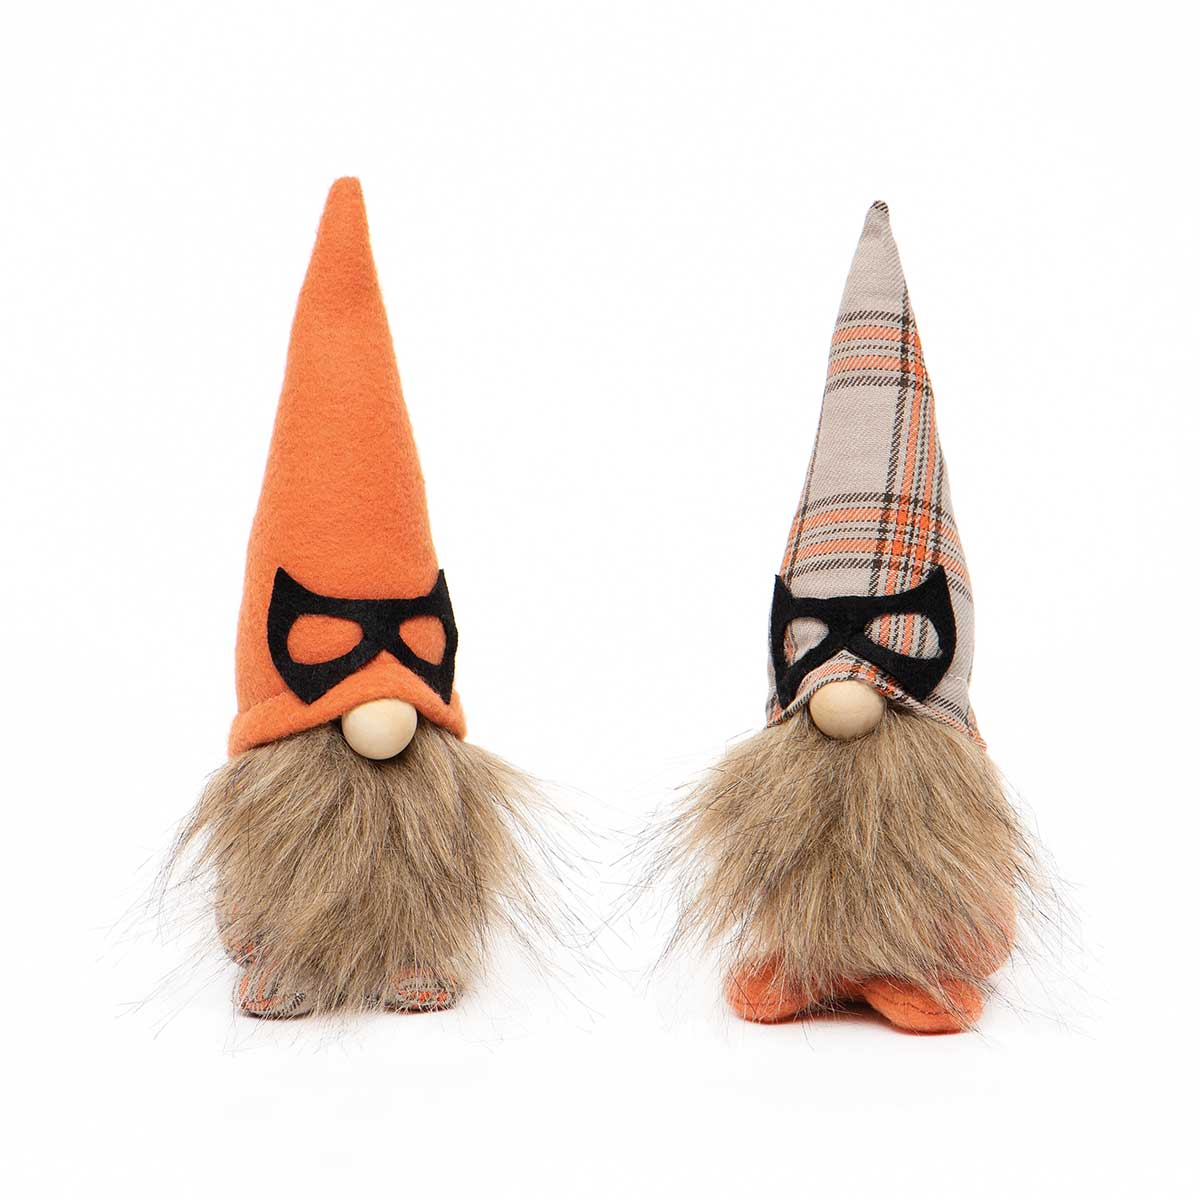 MASKED GNOME WITH WIRED ORANGE/PLAID HAT